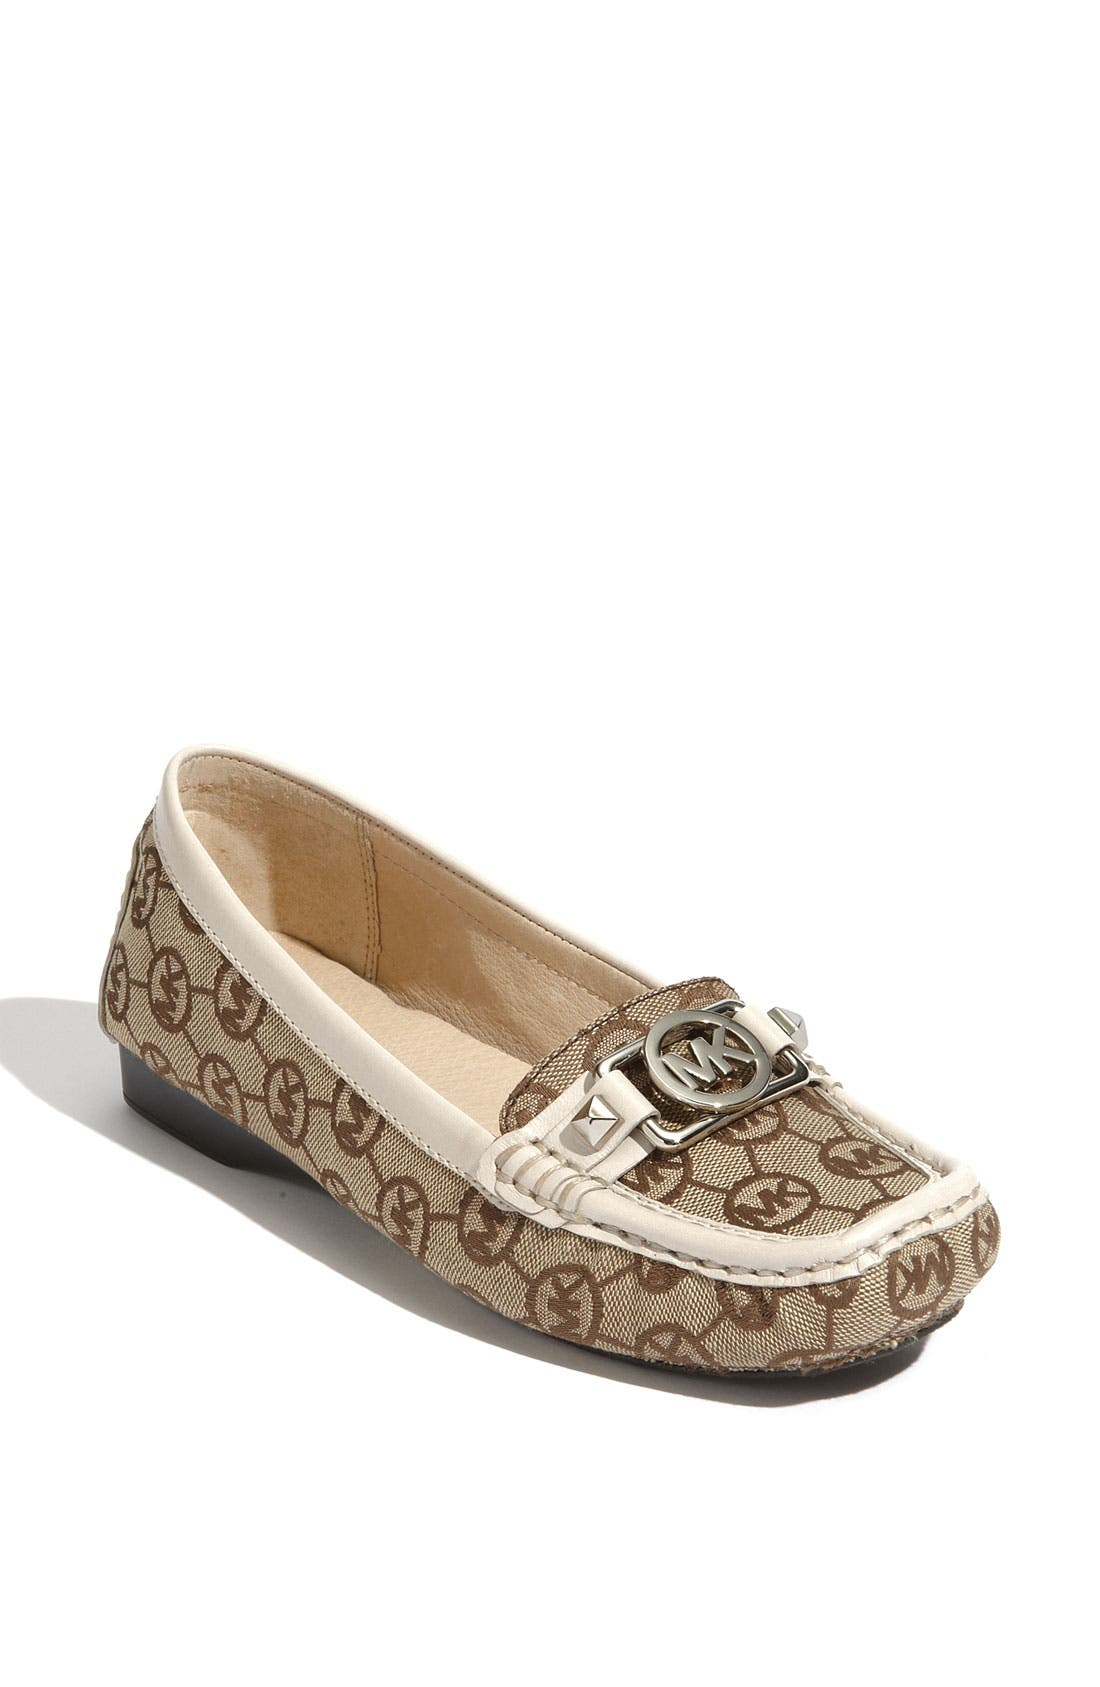 Alternate Image 1 Selected - MICHAEL Michael Kors 'Charm' Flat